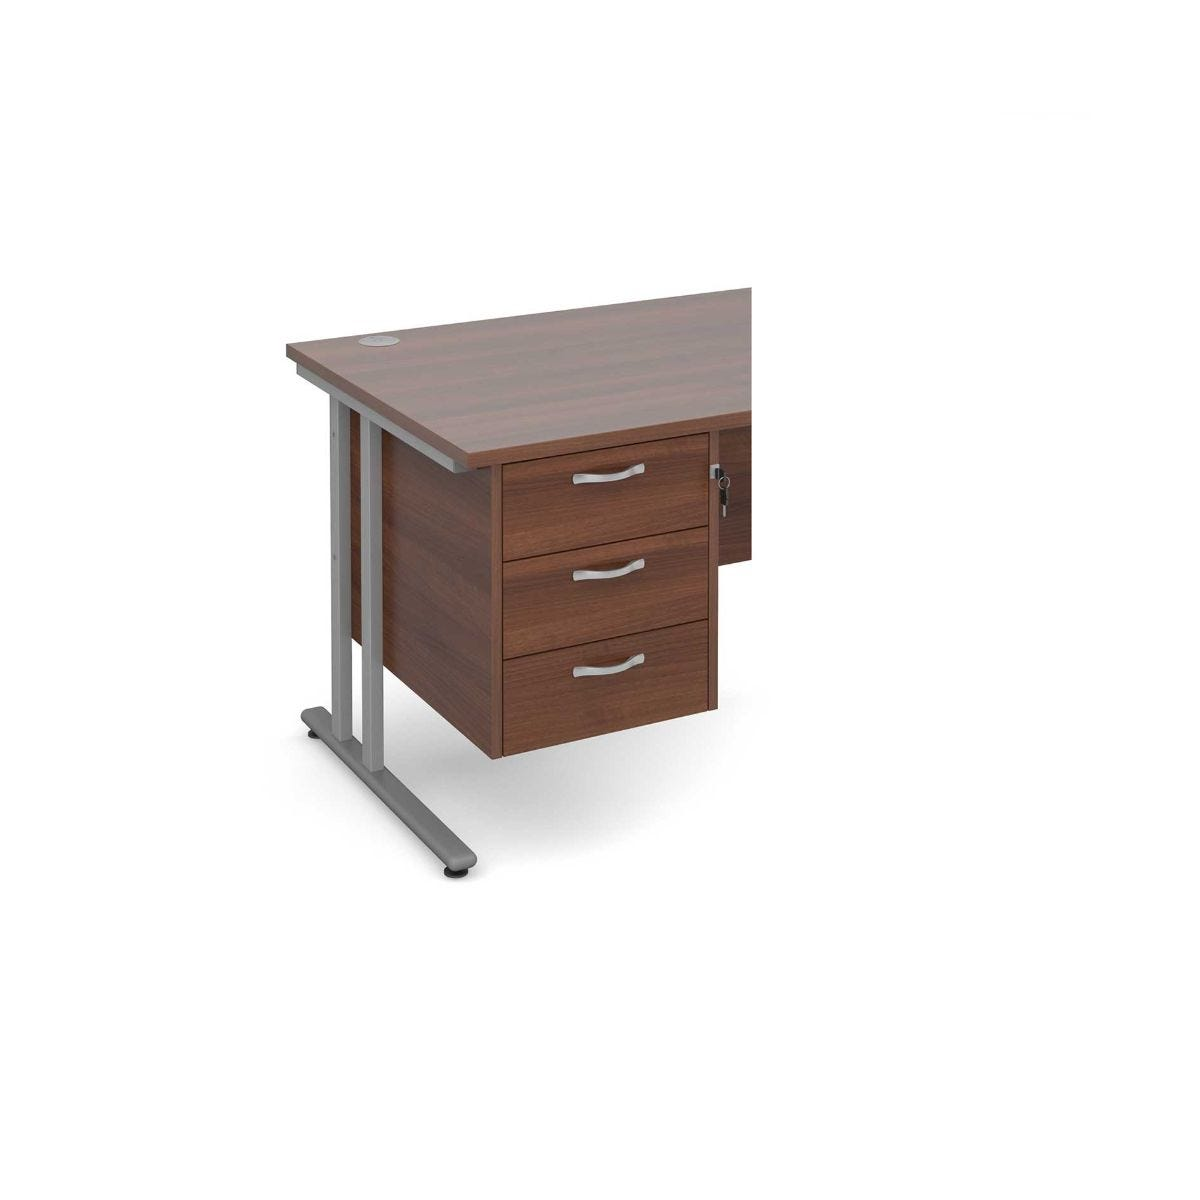 Image of 3 Drawer Fixed Pedestal with Silver Handles